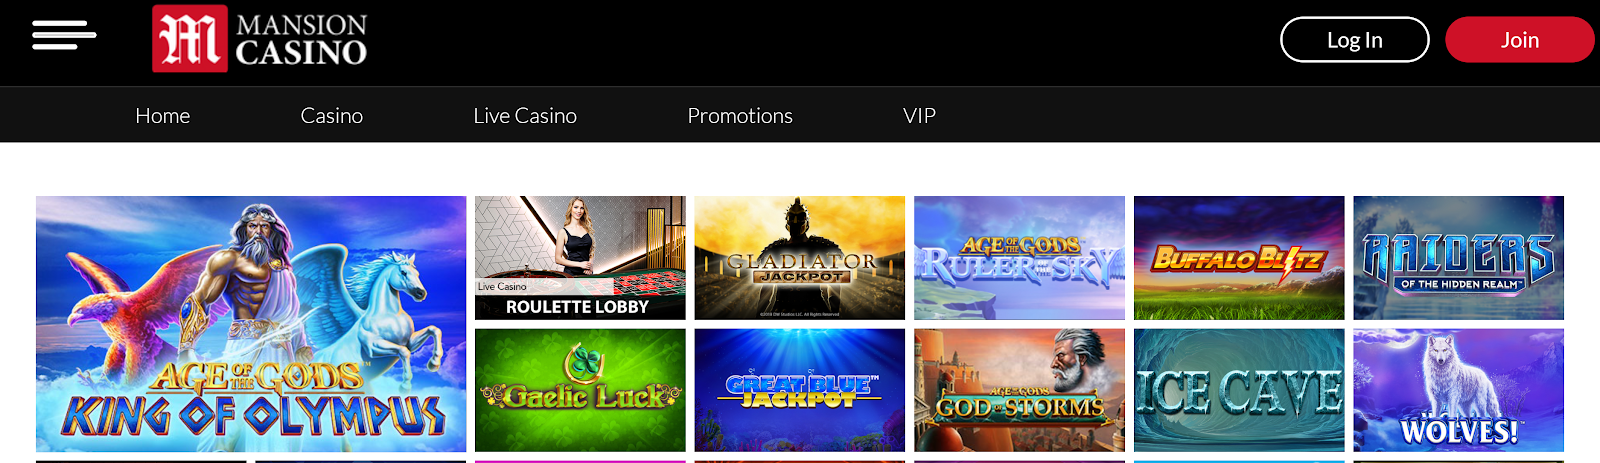 Mansion Casino is a top-rated slot bonus site